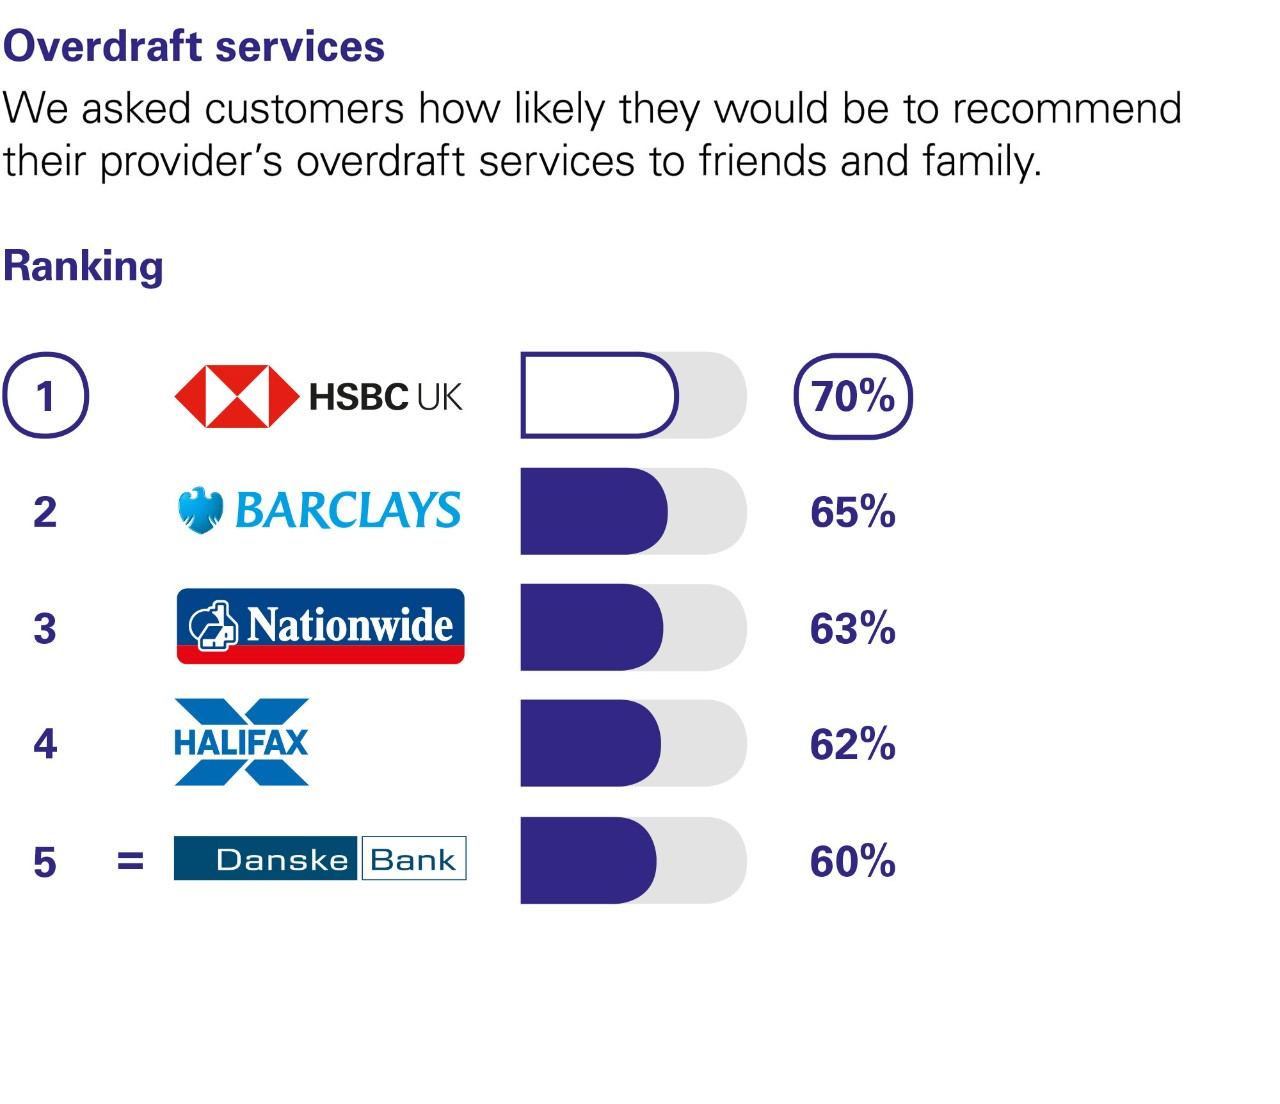 Overdraft services. We asked customers how likely they would be to recommend their provider's overdraft services to friends and family. Ranking: 1 HSBC UK  70%. 2 Barclays 65%.  3 Nationwide 63%. 4 Halifax 62% 5 Danske Bank 60%.